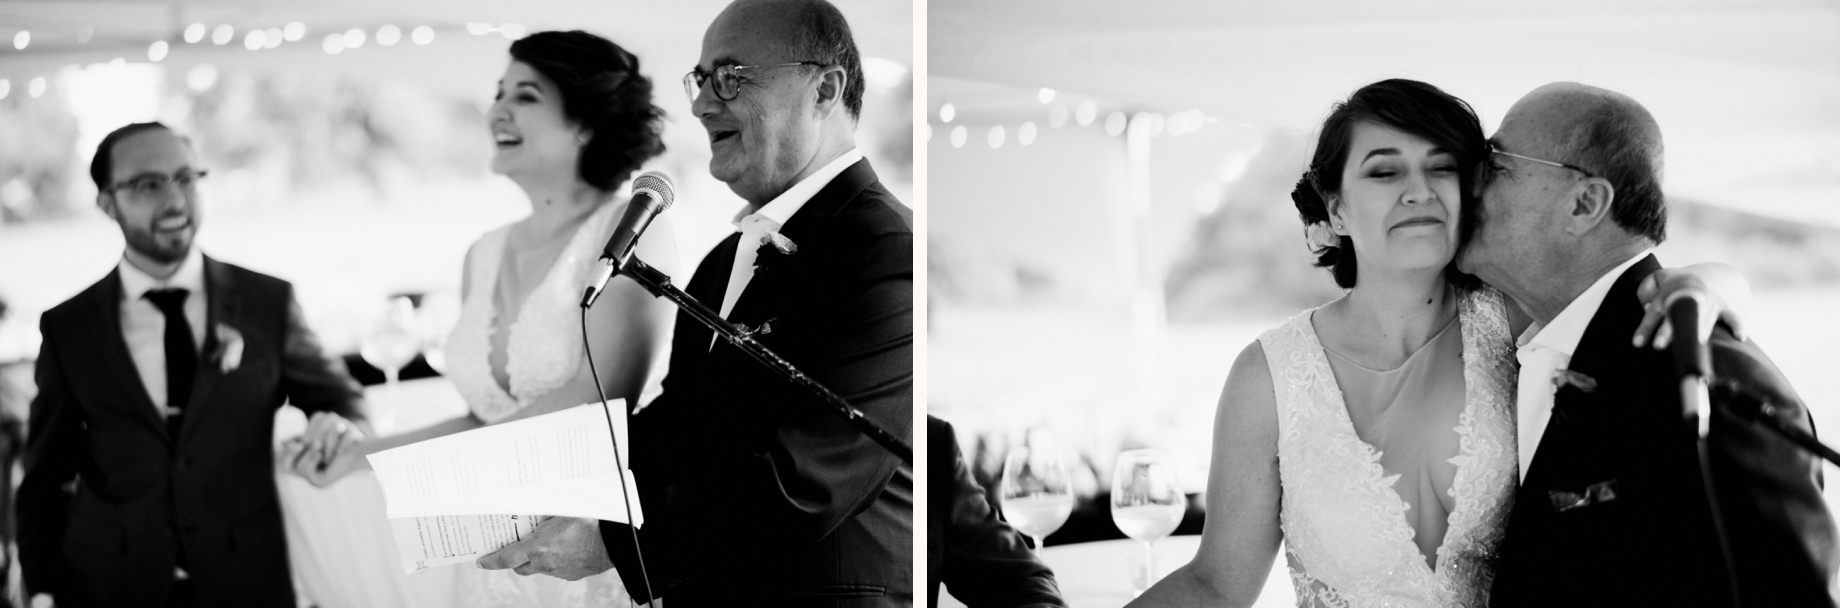 emotional and candid wedding photography